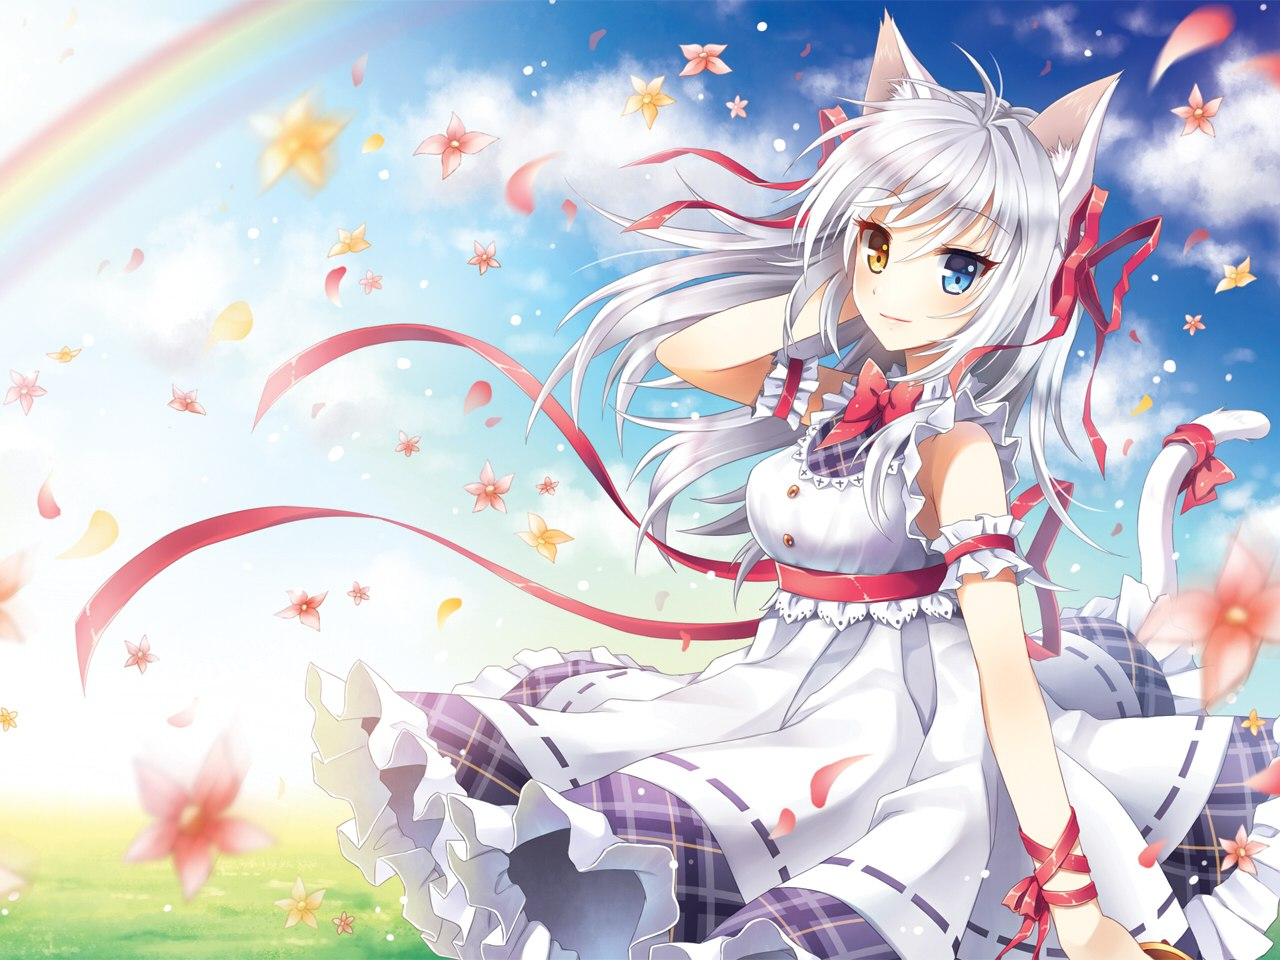 Anime Cat Girl with White Hair Wallpaper | Stuff to Buy